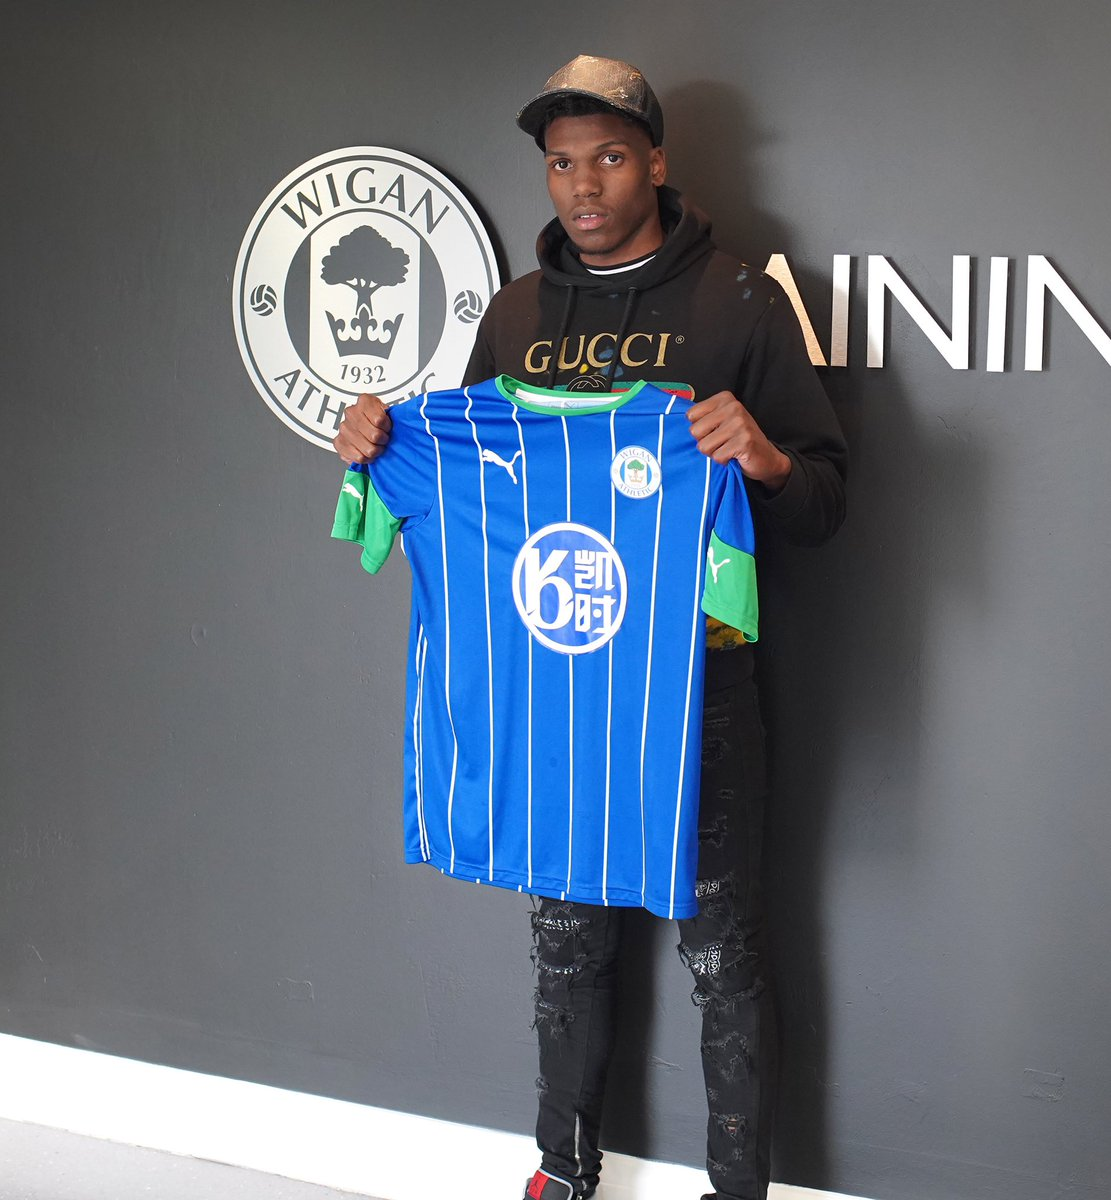 New season, new challenge! Buzzing to join @LaticsOfficial on loan for the upcoming season, big thanks to the gaffer and staff for the warm welcome! #WAFC 🔵⚪